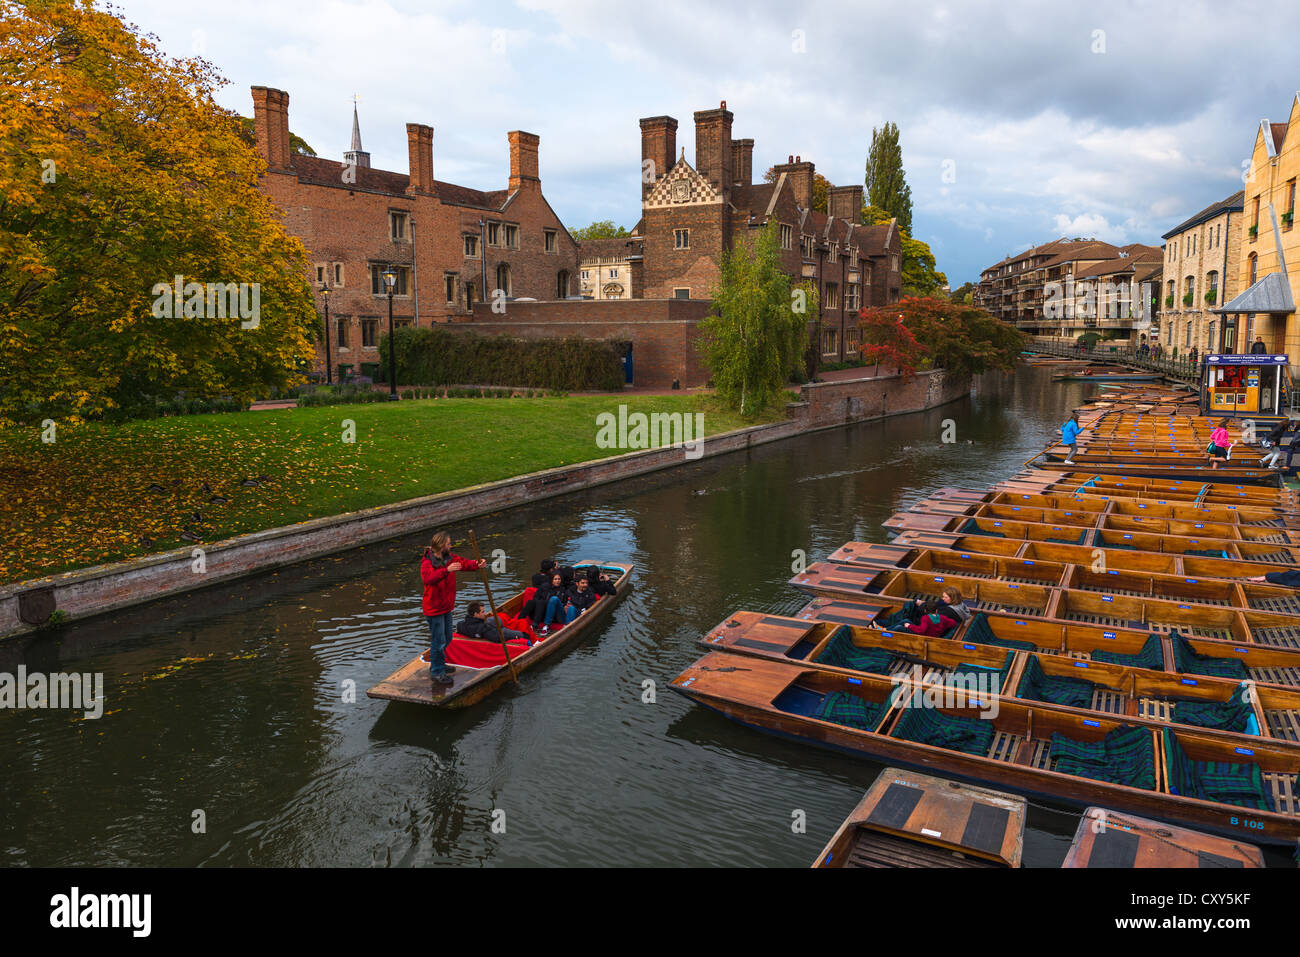 Magdalene College on banks of river Cam in Autumn, Cambridge, England, UK - Stock Image